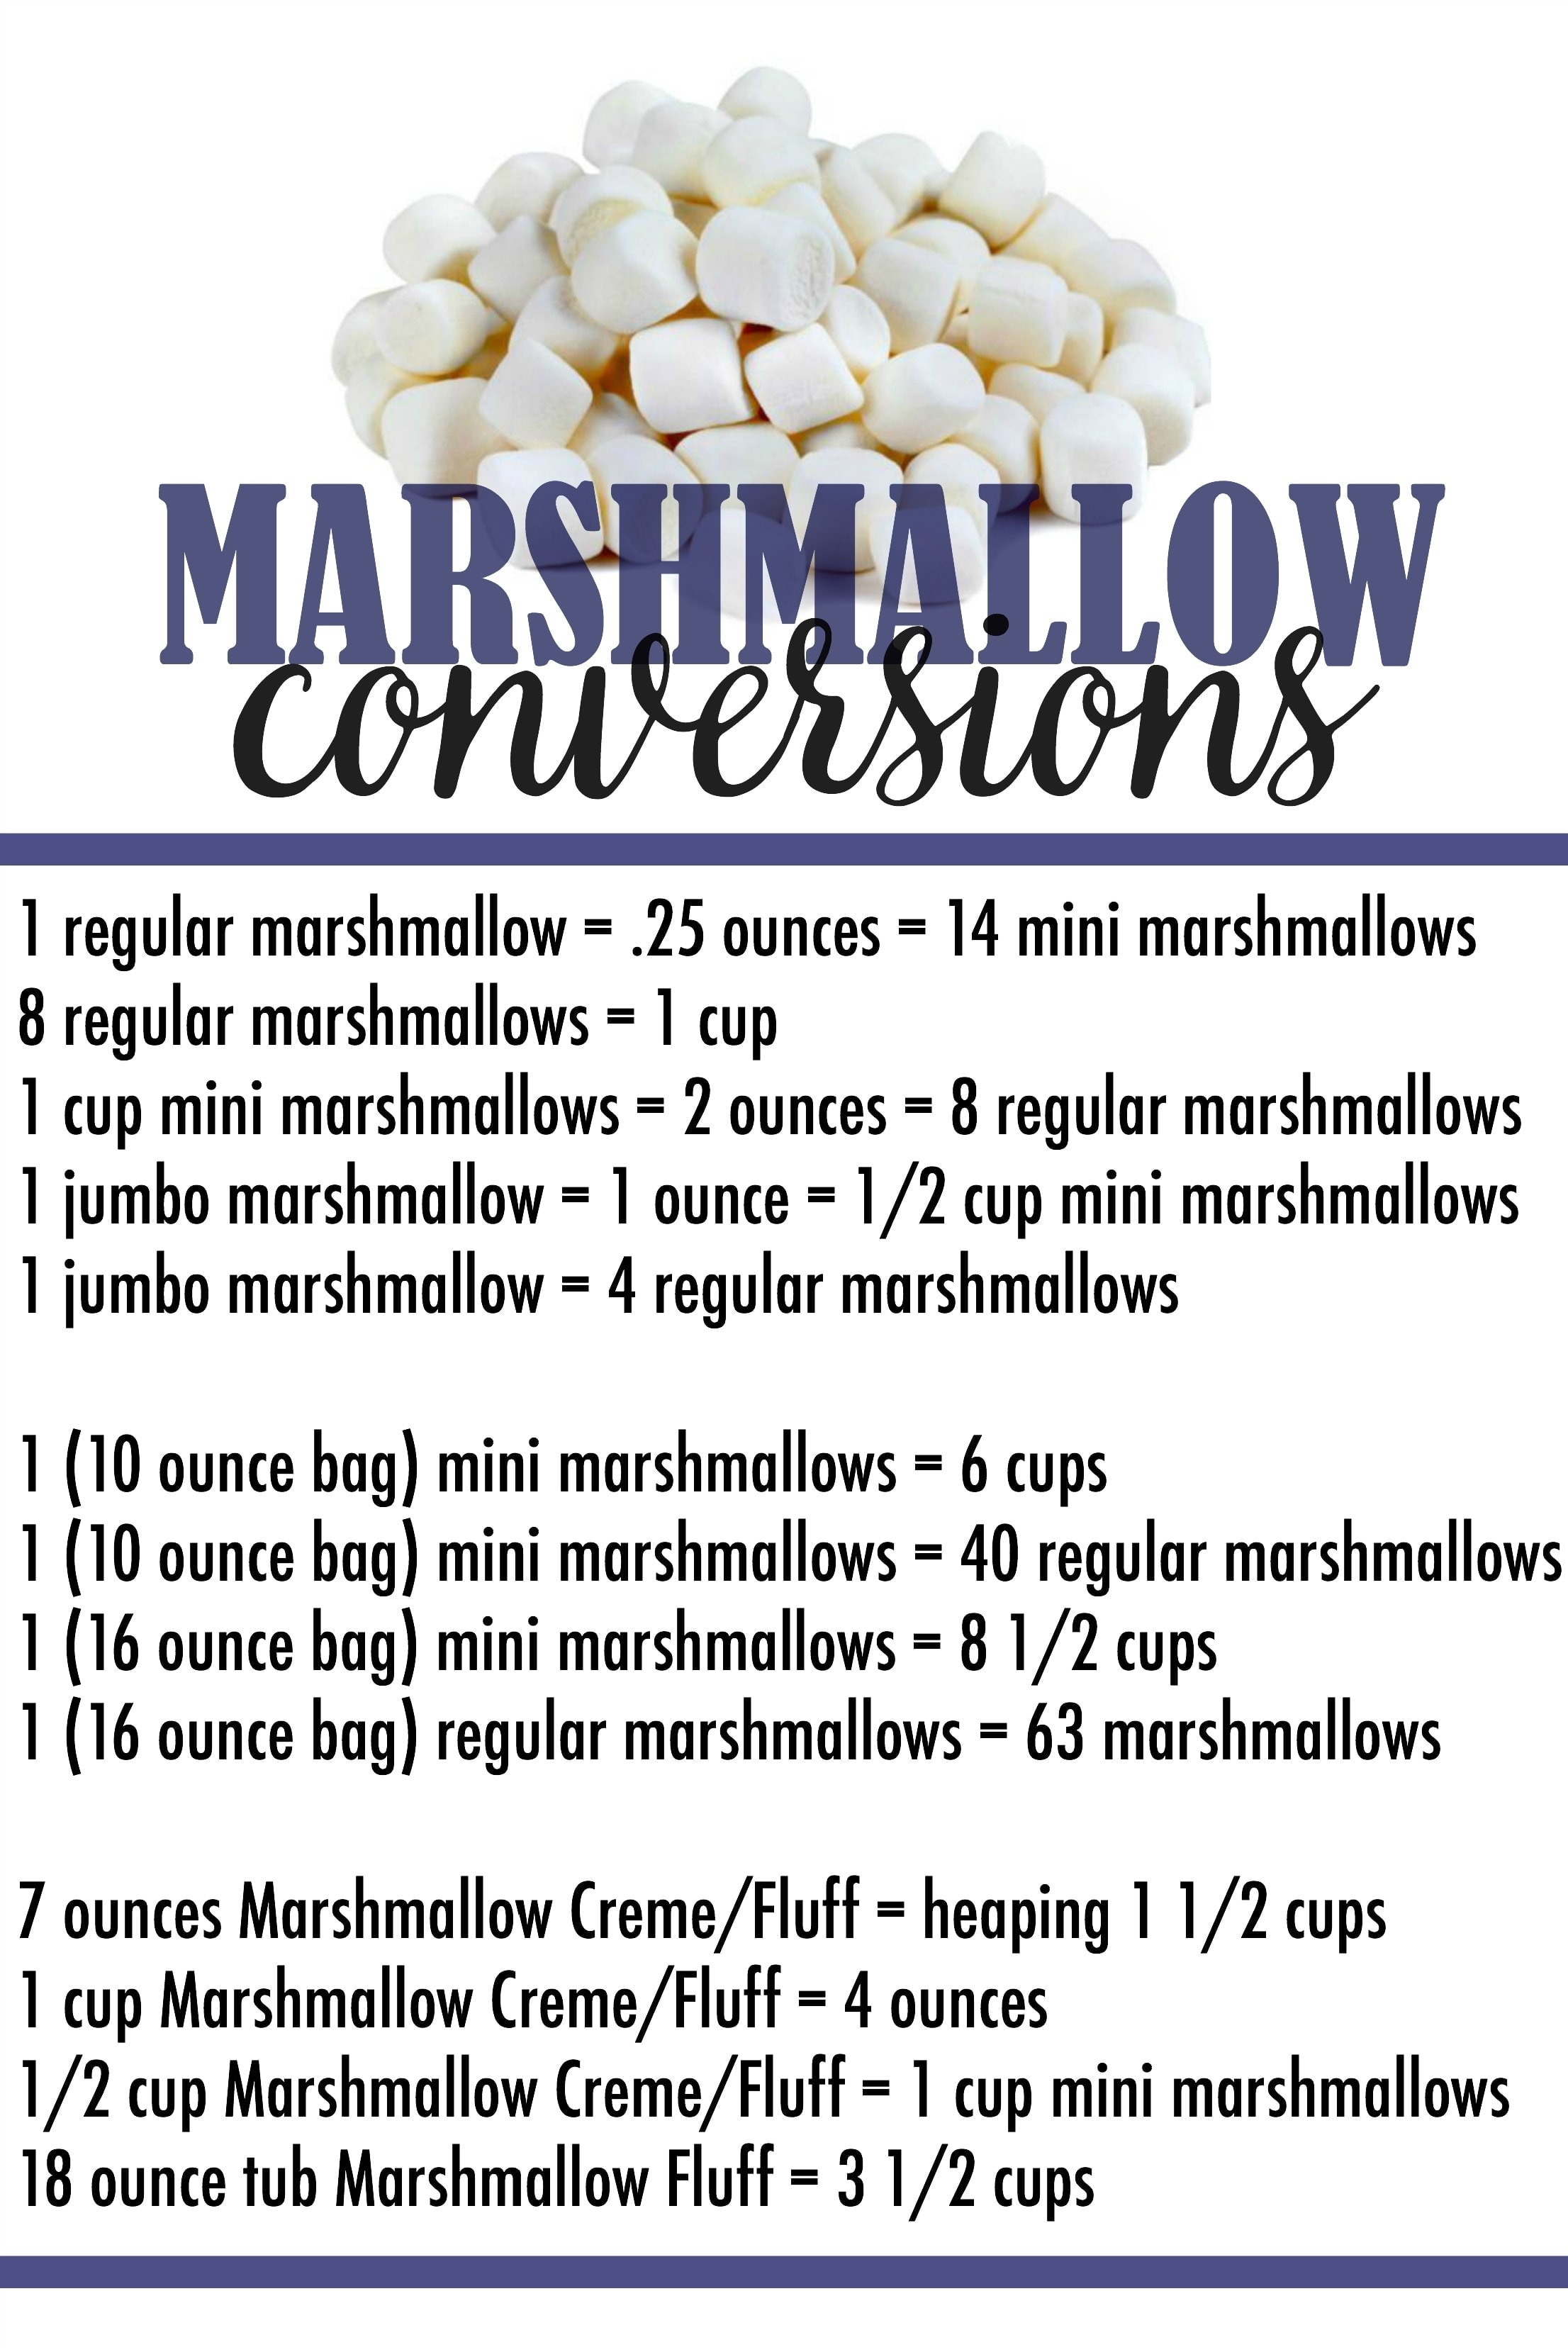 Marshmallow conversions cookies and cups marshmallow conversion chart all my marshmallow questions answered nvjuhfo Gallery